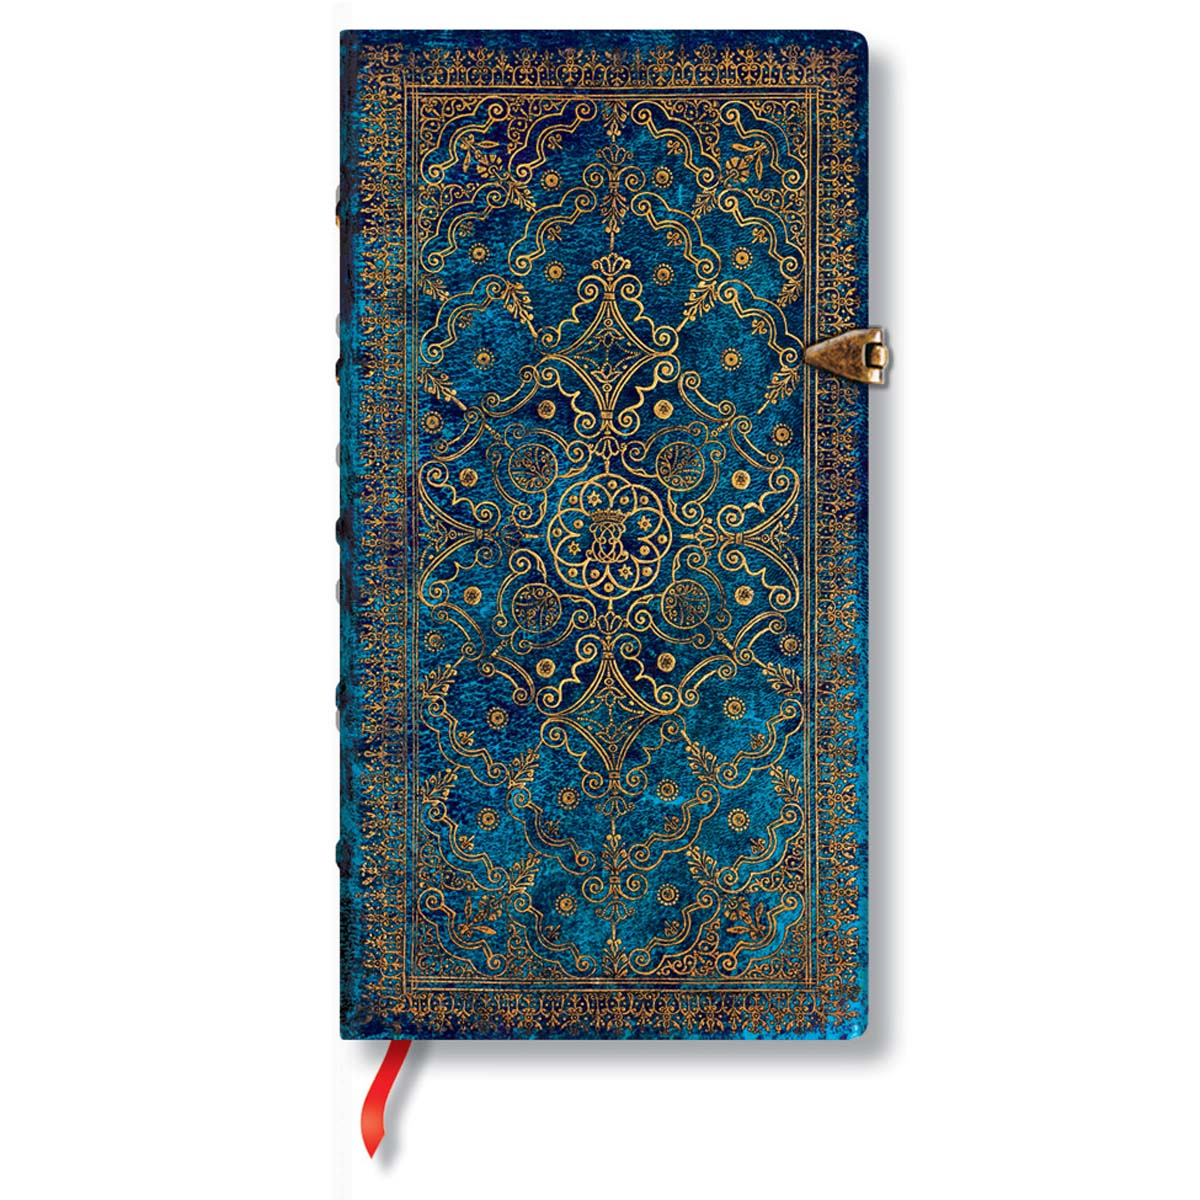 Paperblanks Equinoxe Azure Slim 3.5 x 7 inch Lined Journal